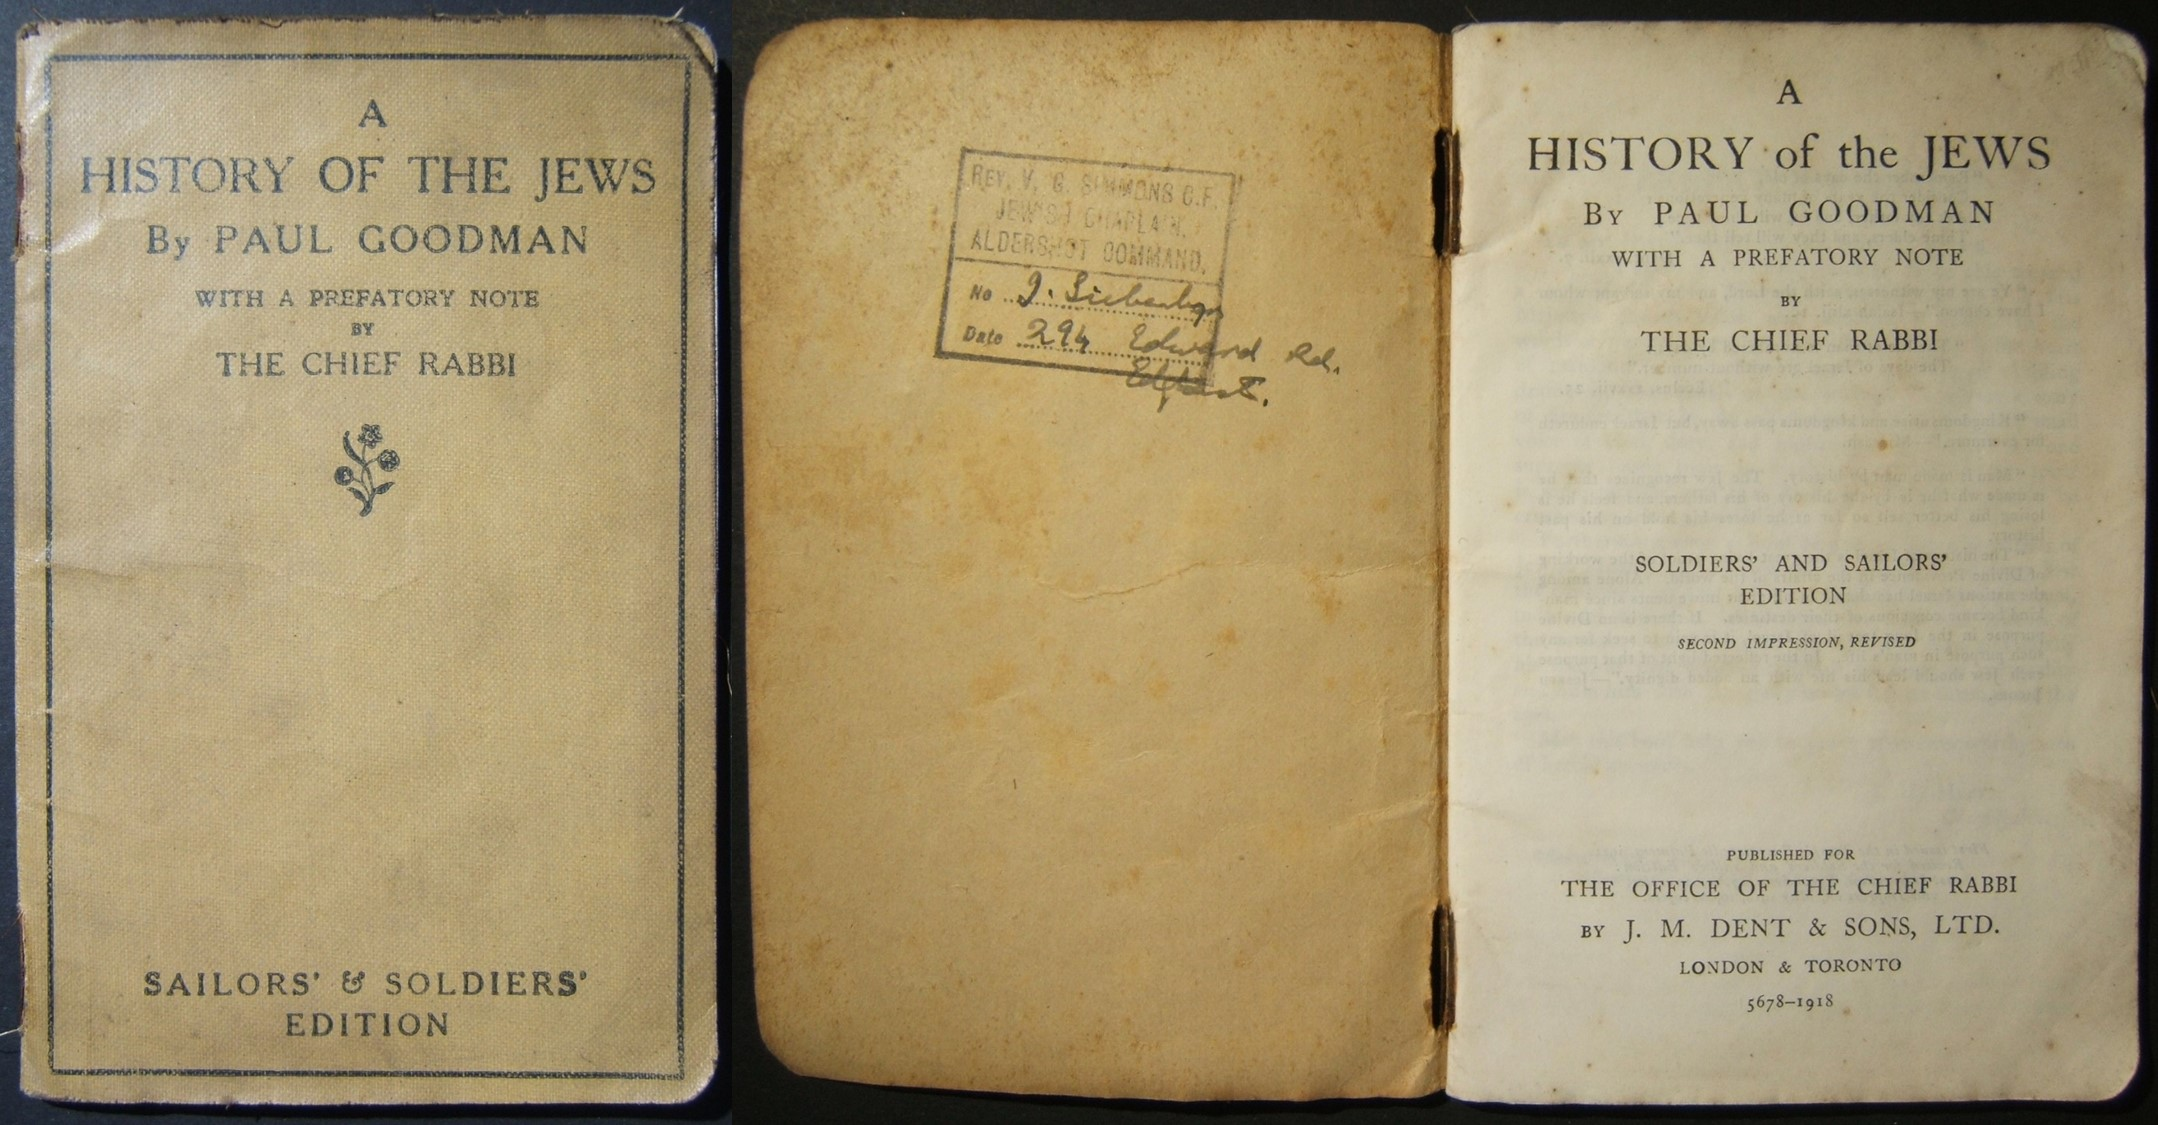 WWI Jewish history of WWI book of Paul Goodman for British army / seahanders 1918